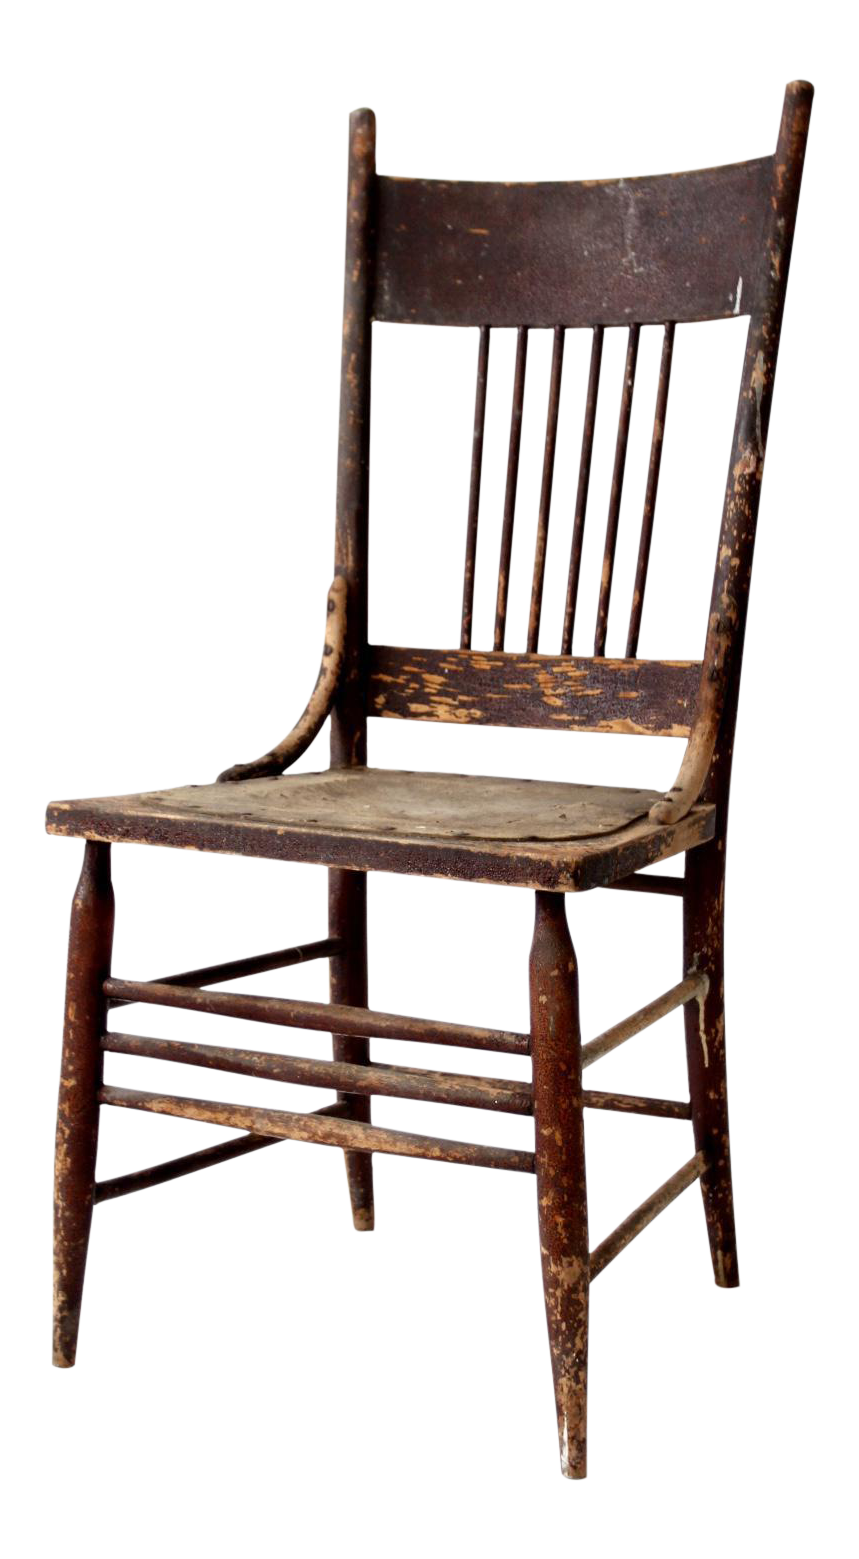 Antique Pressed Leather Seat Spindle Back Chair  sc 1 st  Chairish & Antique Pressed Leather Seat Spindle Back Chair | Chairish